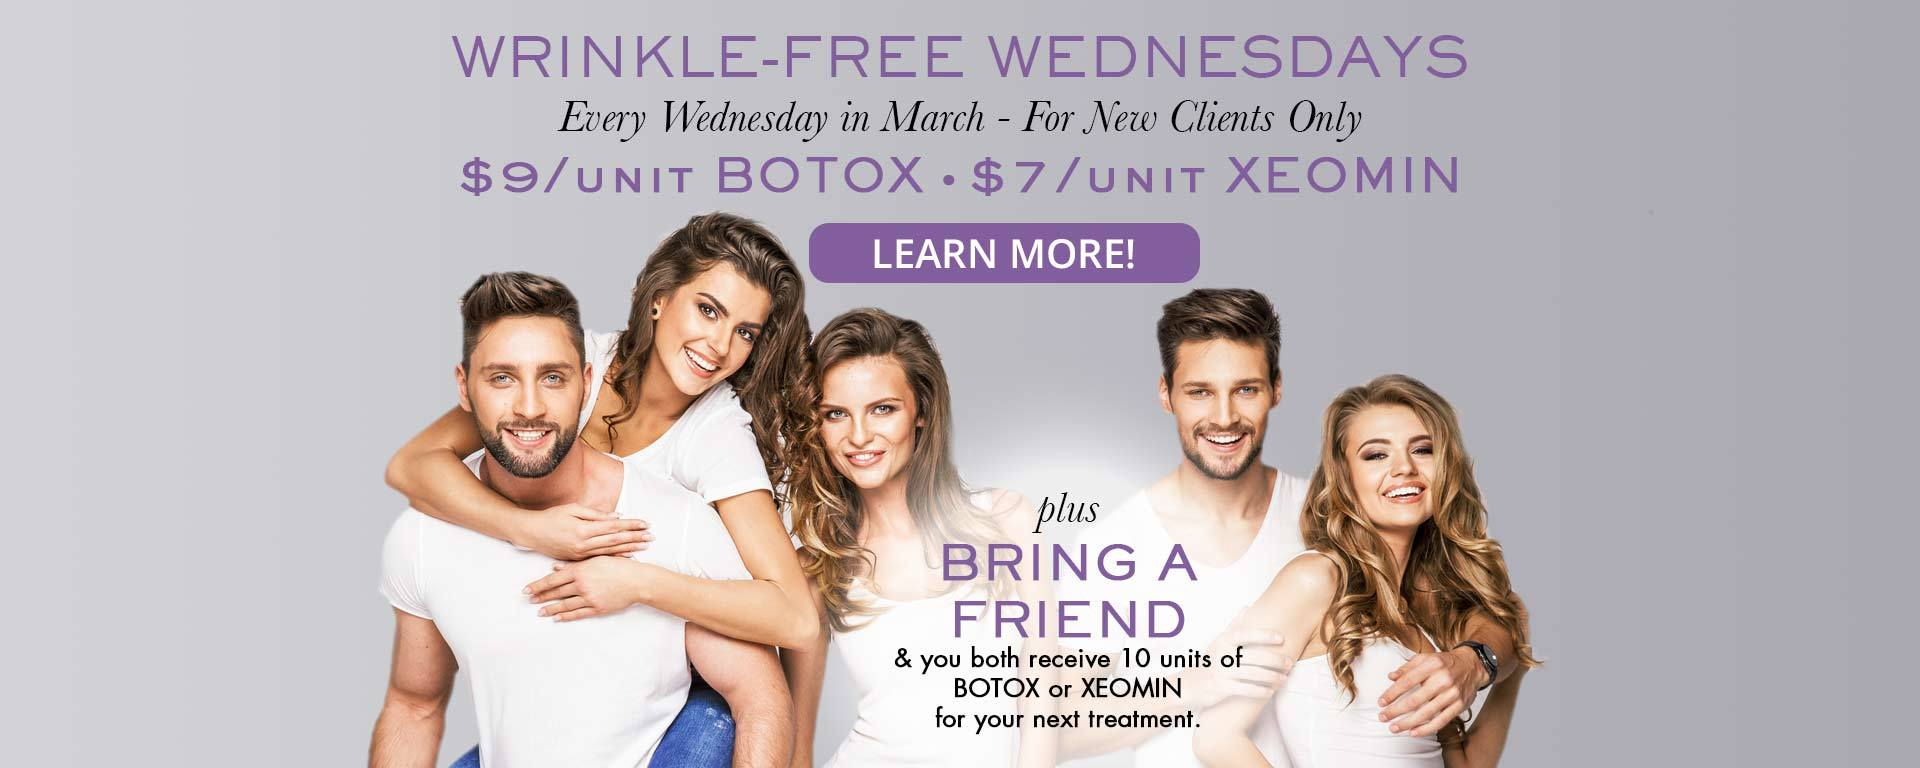 Wrinkle-Free Wednesdays. Every Wednesday in March - For New Clients Only. $9/unit BOTOX and $7/unit XEOMIN. Plus: Bring a Friend and you both receive 10 units of BOTOX or XEOMIN for your next treatment!